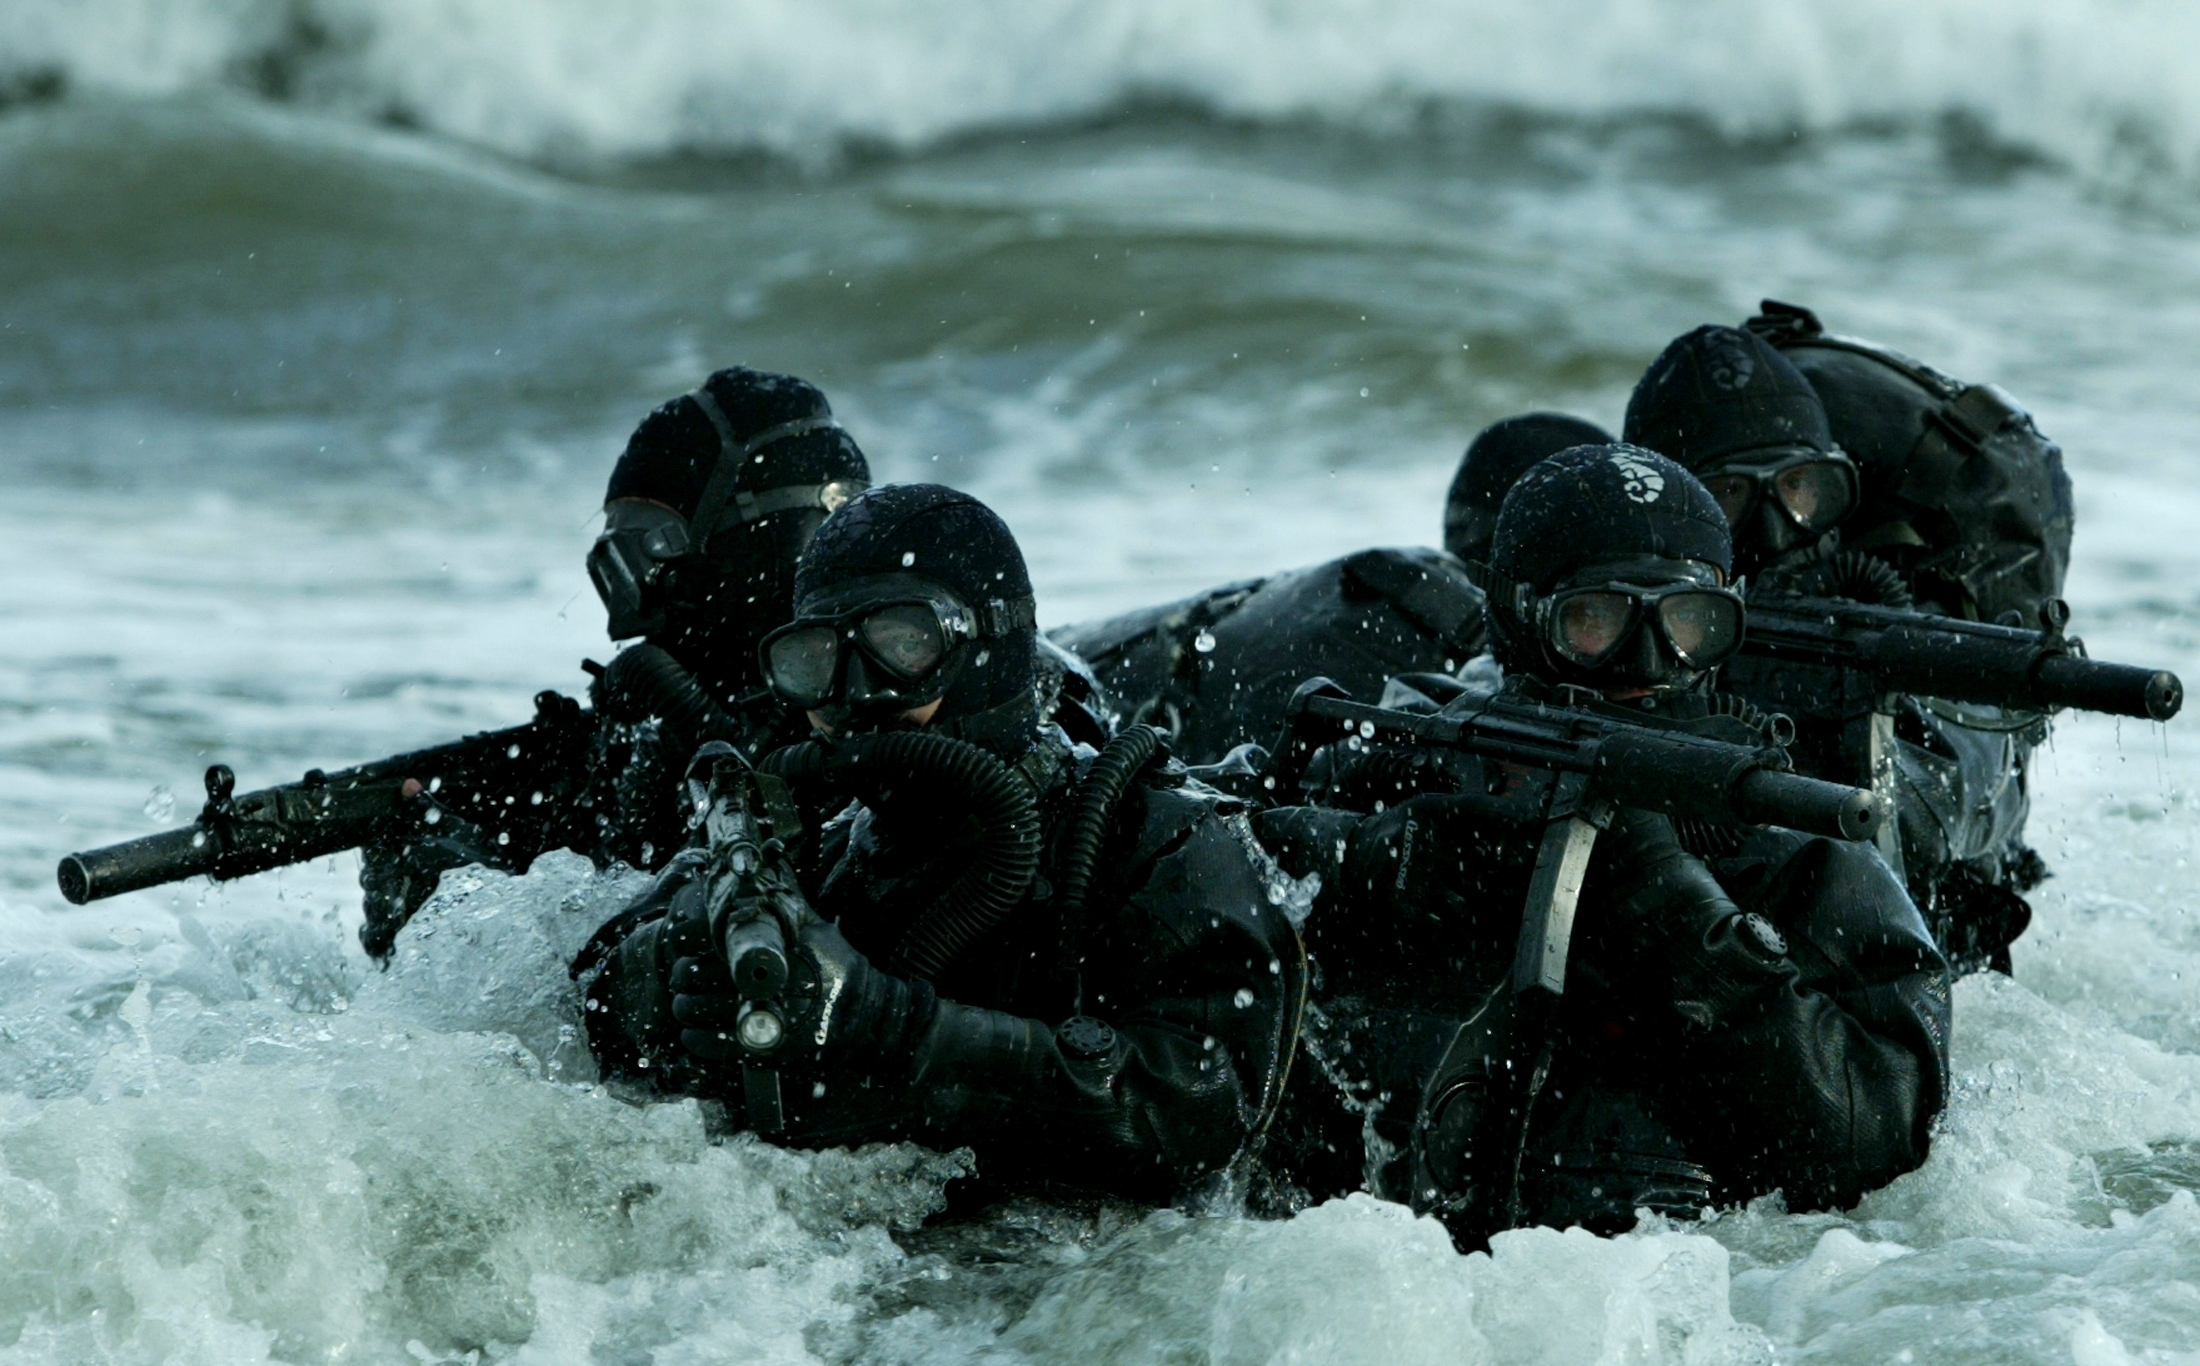 army military navy special forces navy seals 2200x1366 wallpaper 2200x1366